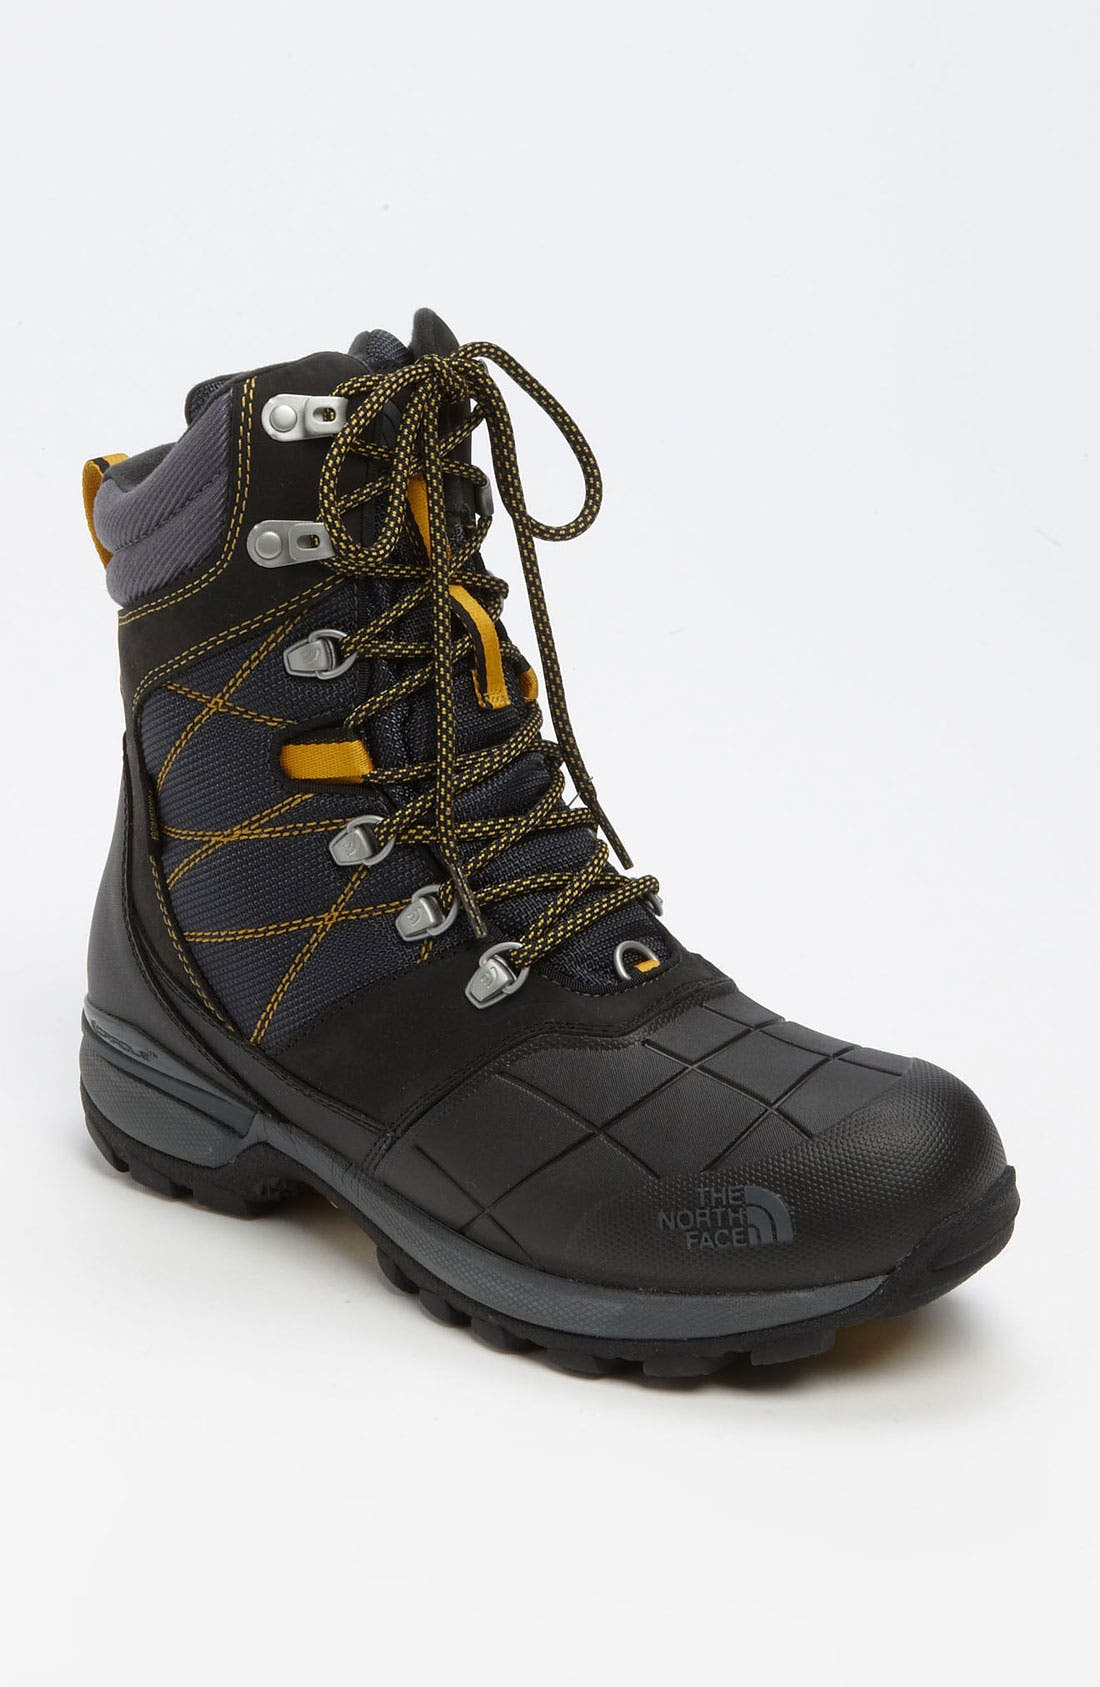 Alternate Image 1 Selected - The North Face 'Snowsquall' Snow Boot (Online Only)